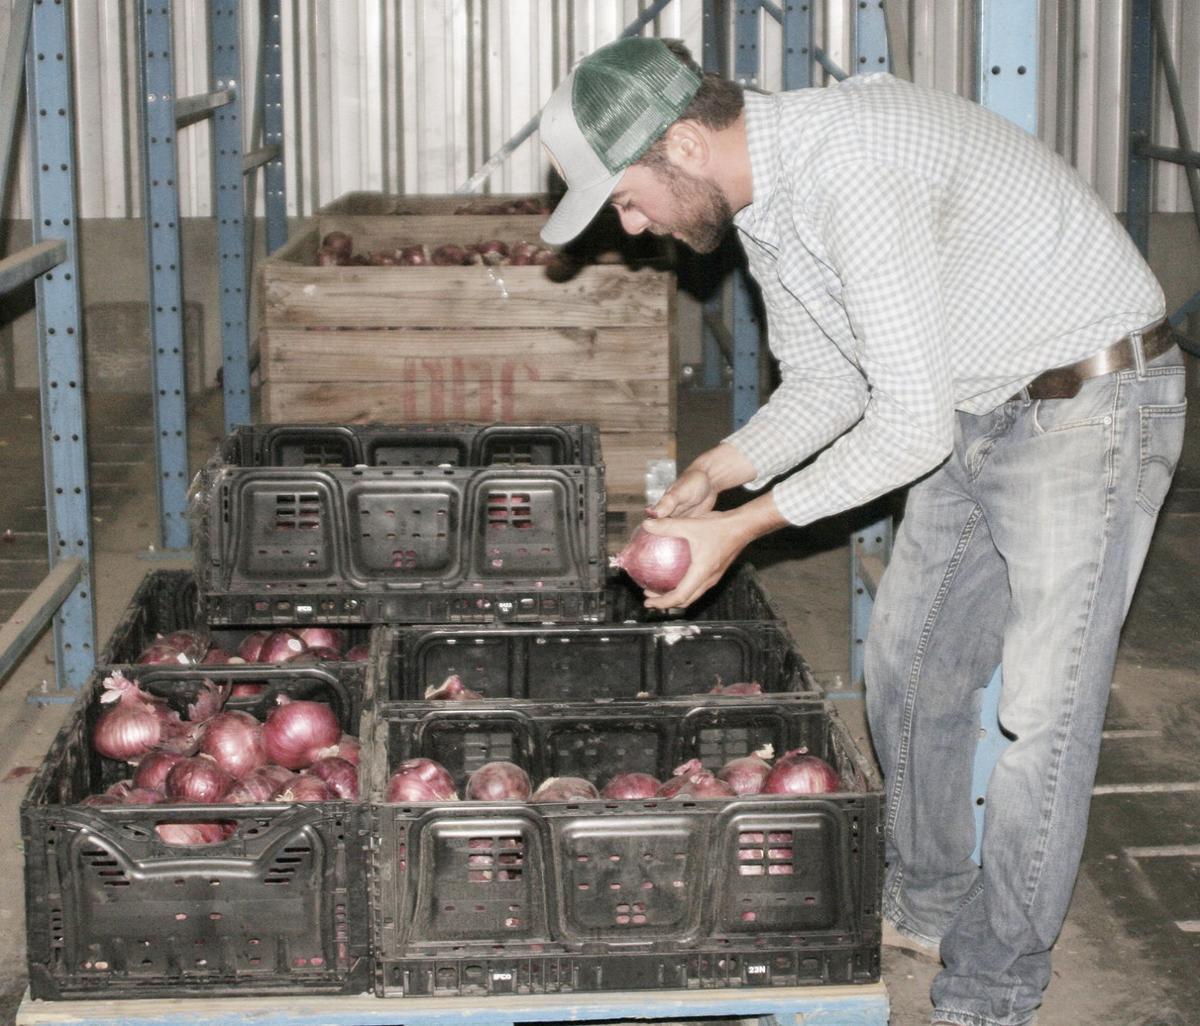 Red Walla Walla sweet onions 10 years in the making